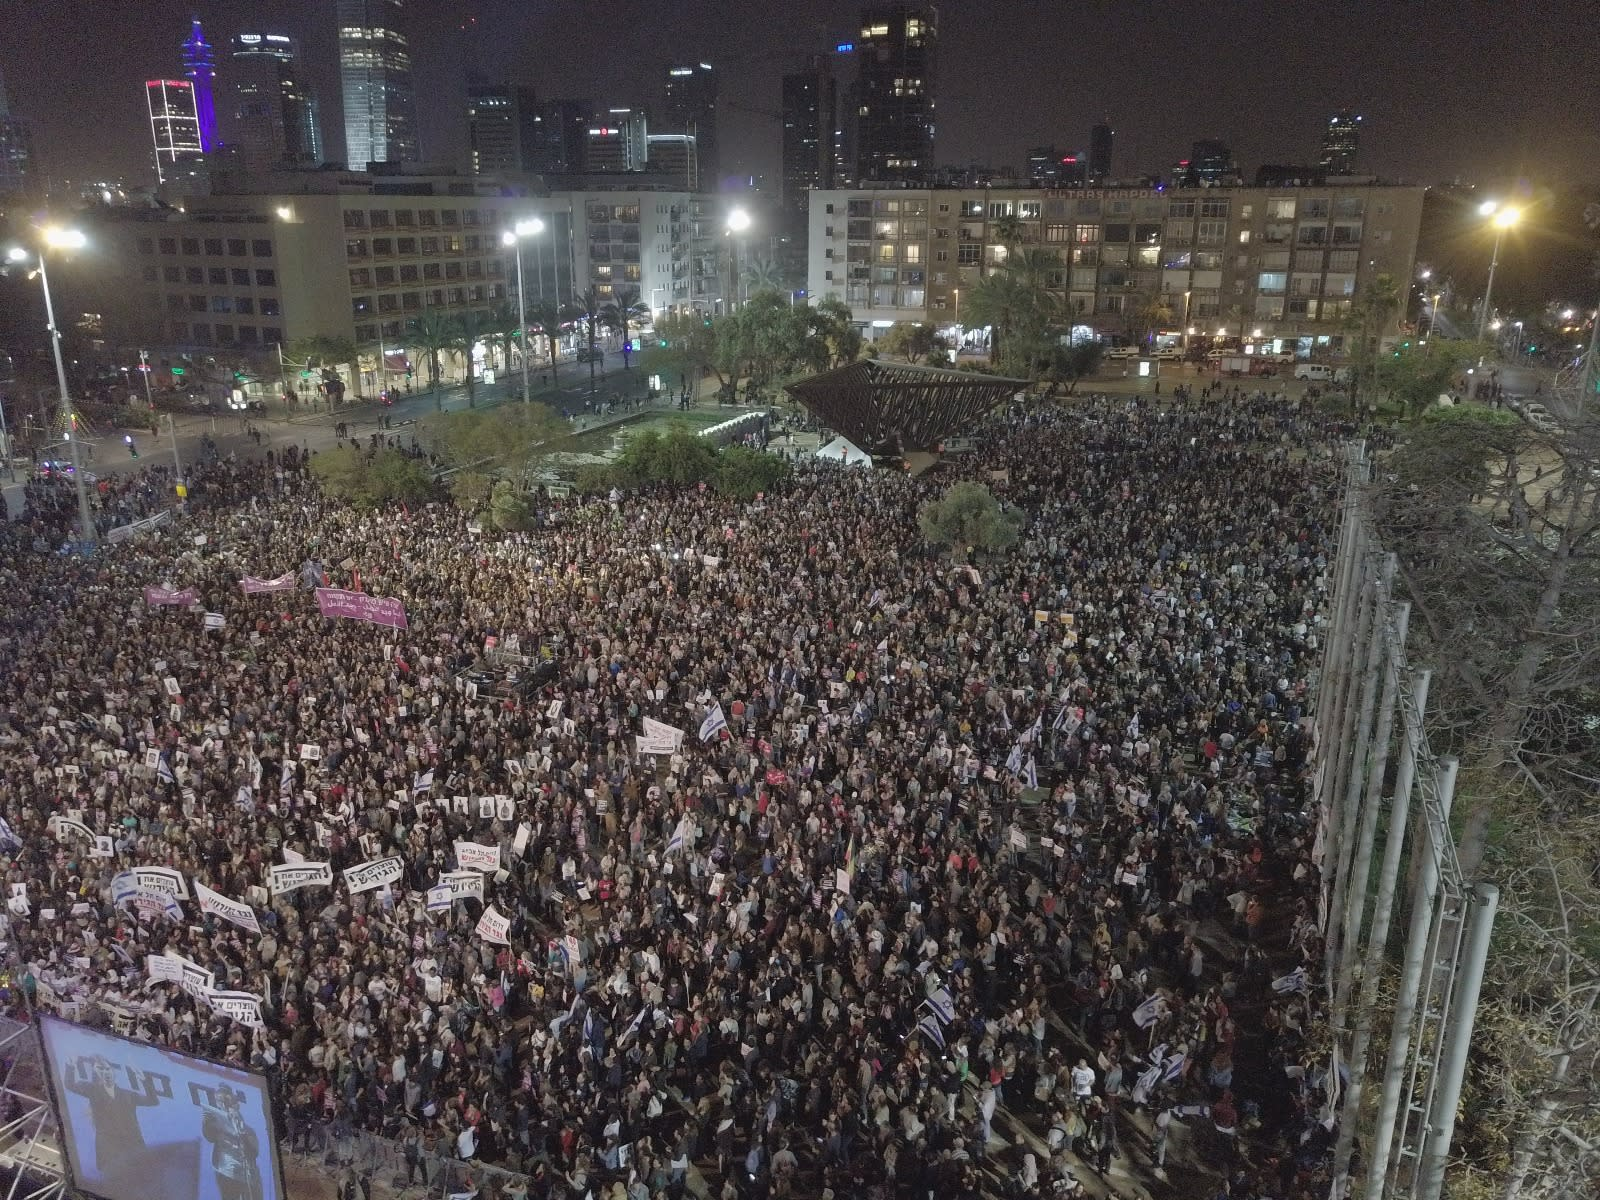 Protesters rally against plans to deport African migrants at Tel Aviv's Rabin Square (ENDING THE DEPORTATION PR)